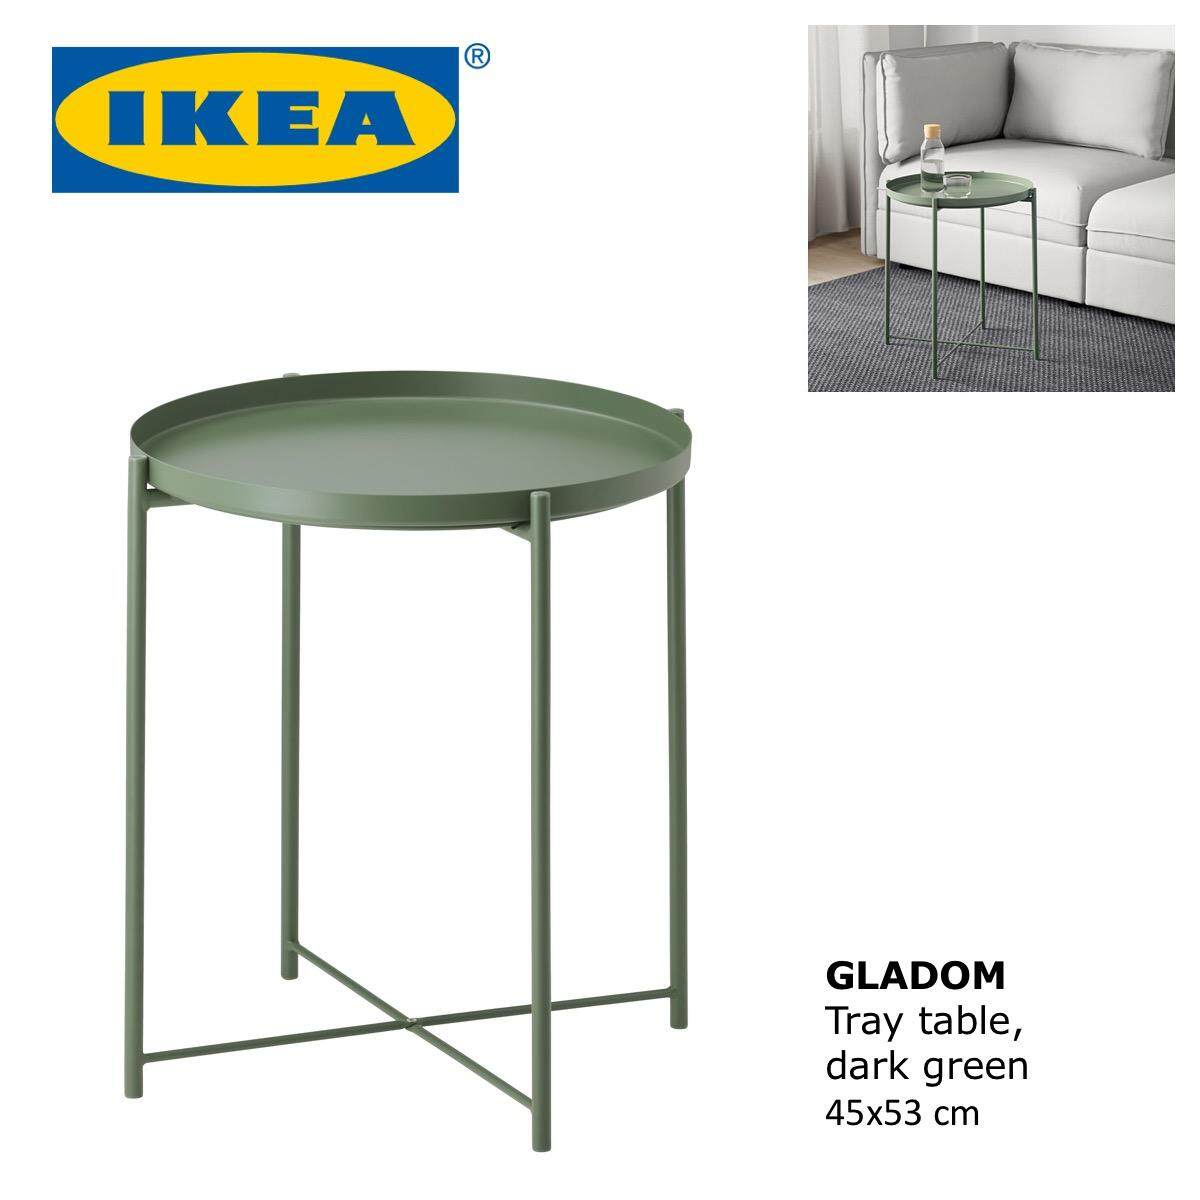 Ikea Gladom Living Room Side Tray Coffee Table Dark Green